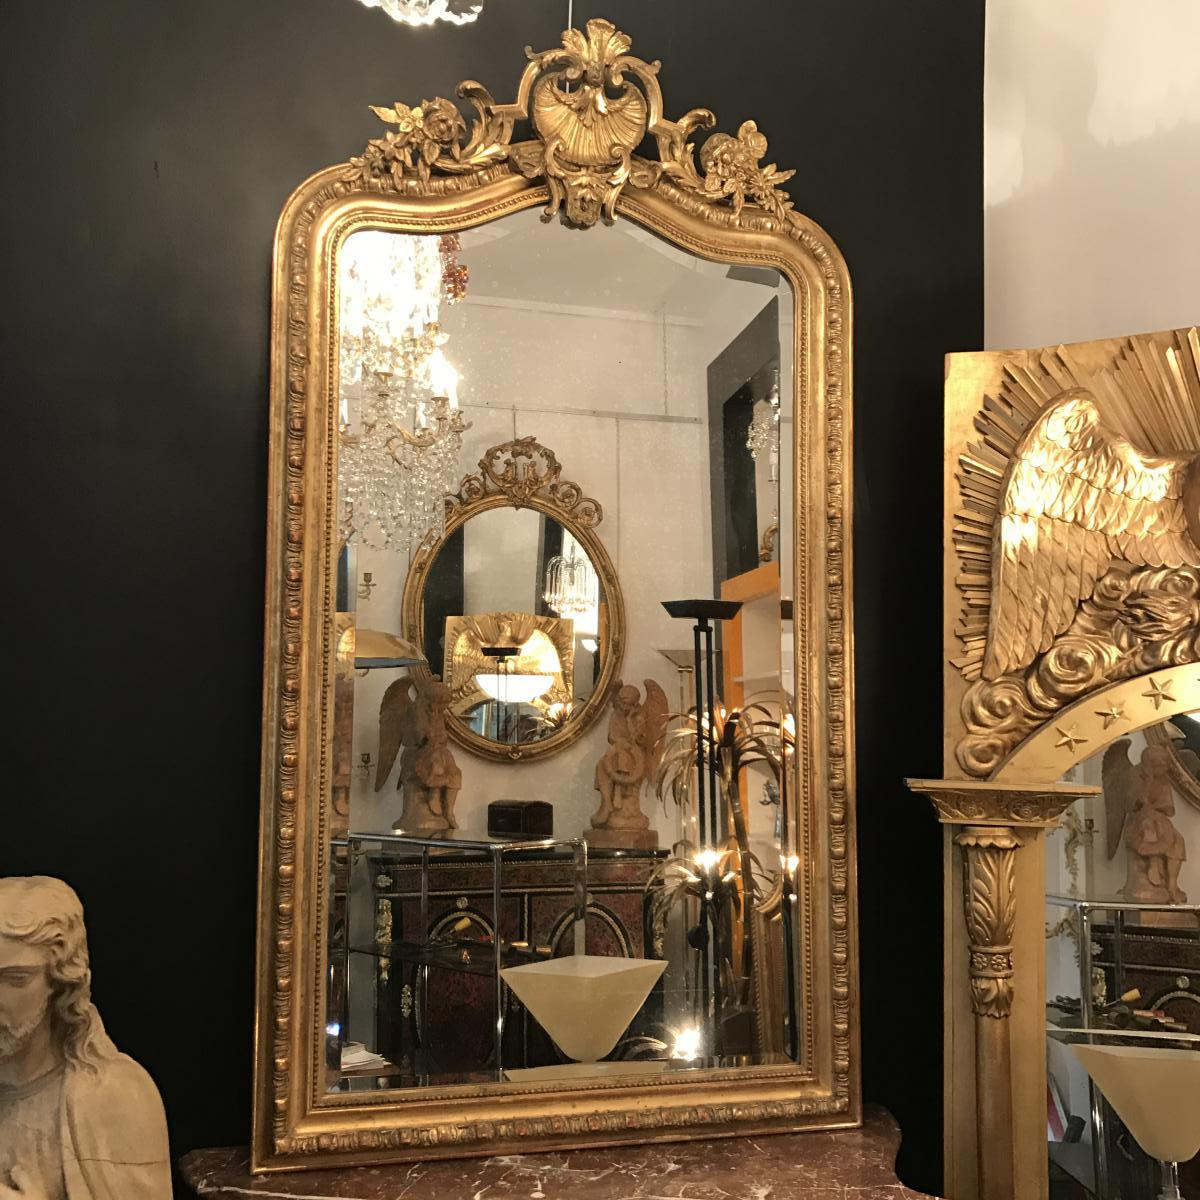 h 163 cm miroir de style louis xv epoque xixeme miroirs de chemin e. Black Bedroom Furniture Sets. Home Design Ideas